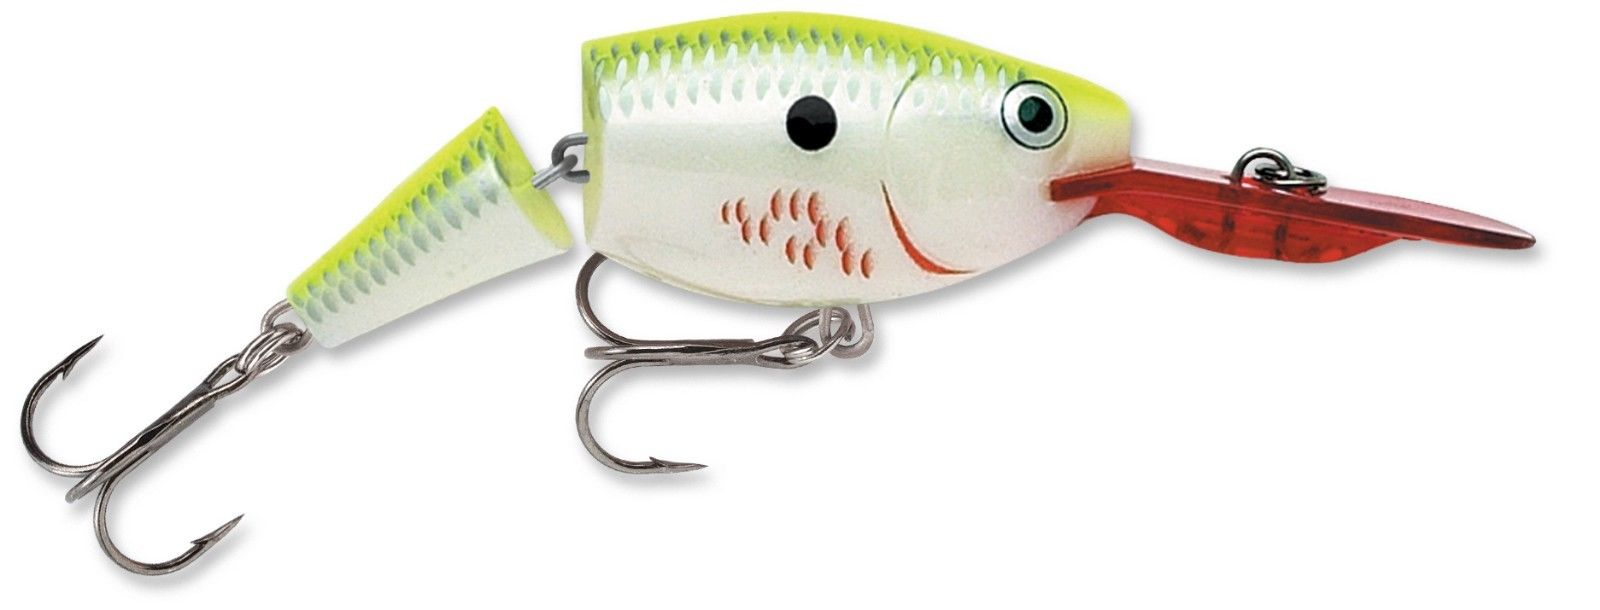 Rapala Jointed Shad Rap 05 Deep Diving Crankbait Baby Bass